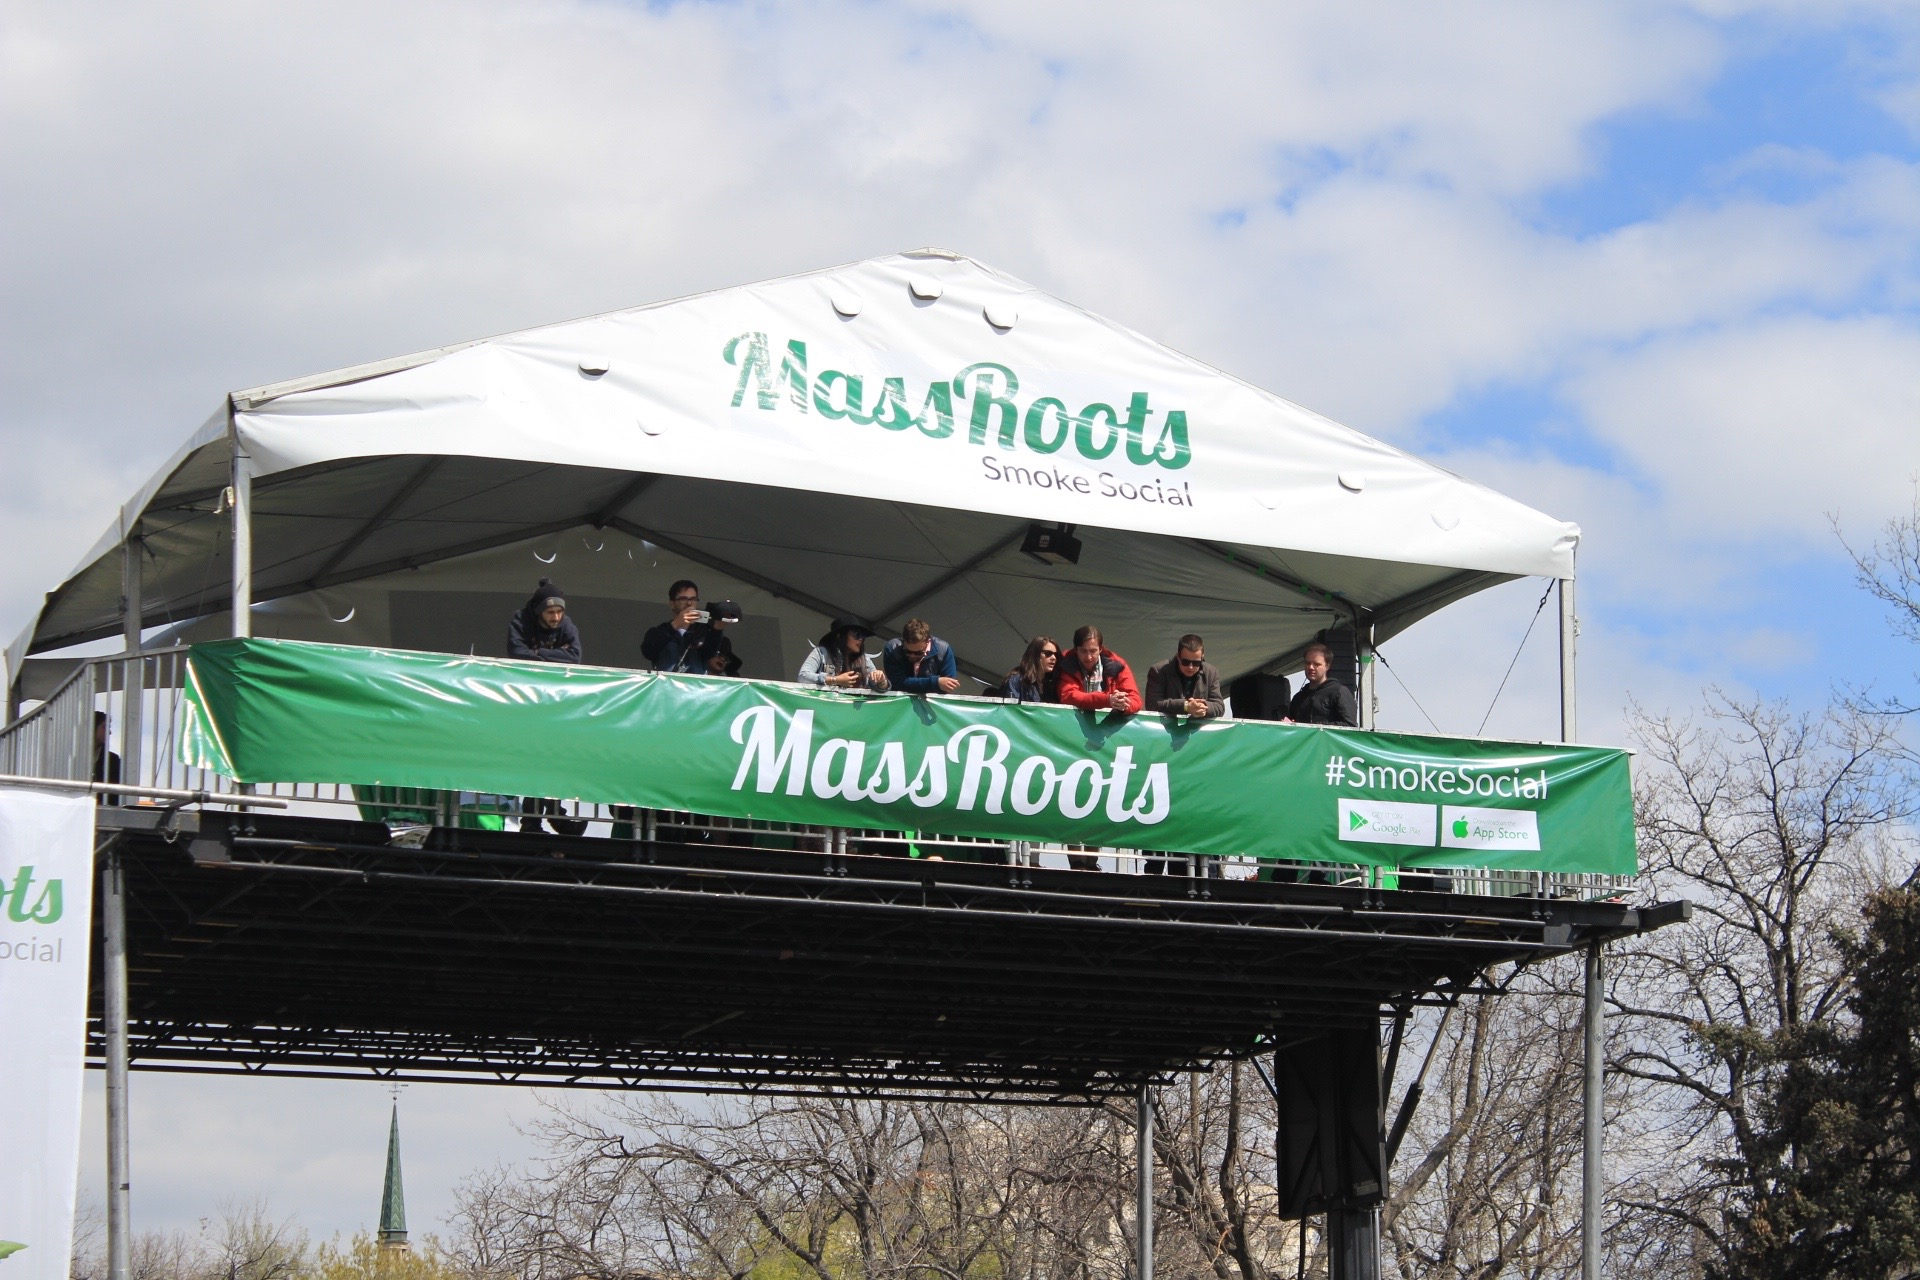 4/20 Rally Cannabis MassRoots Community